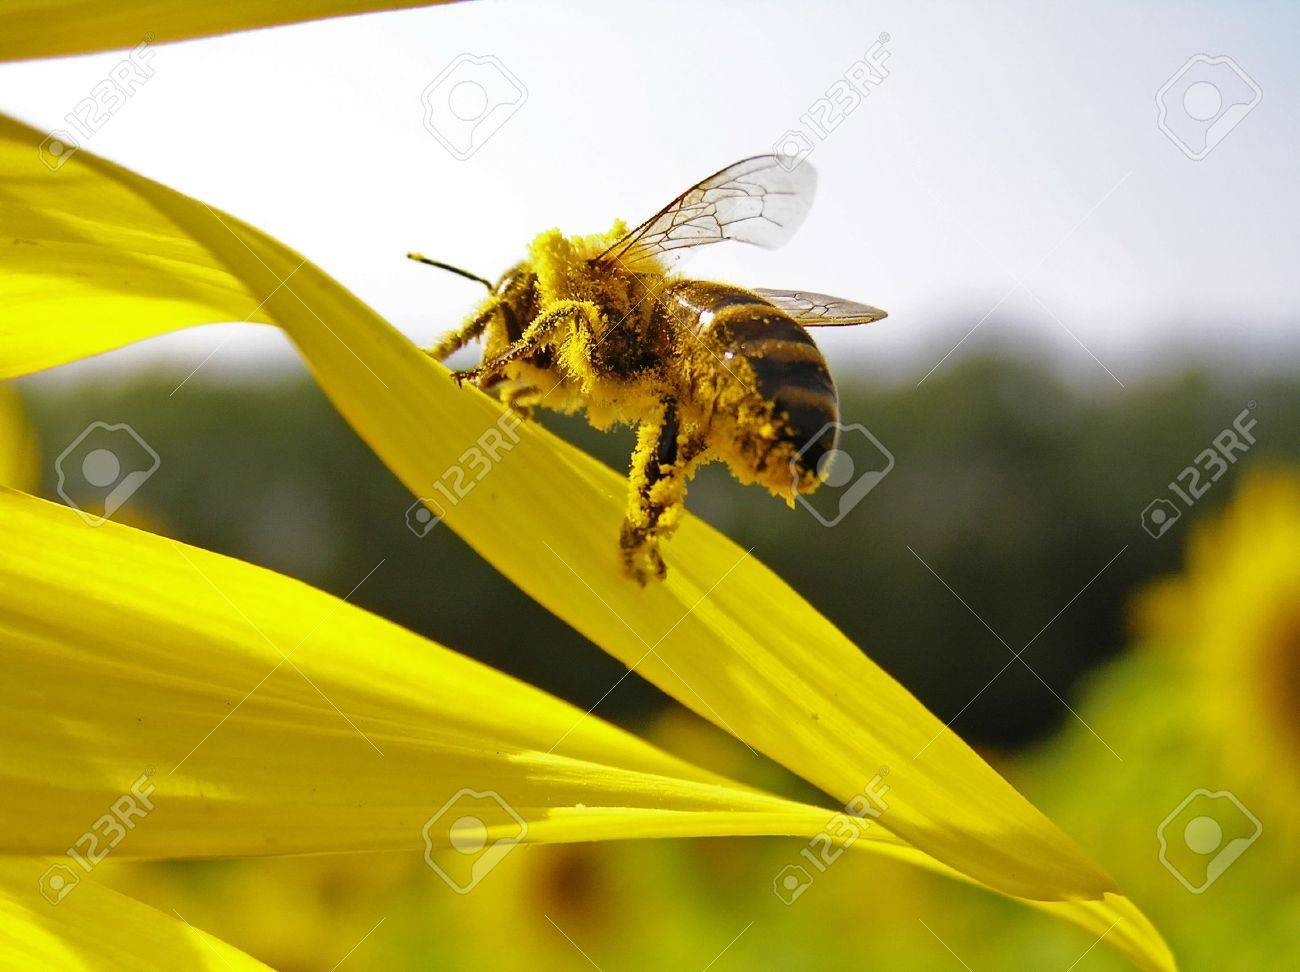 Collecting pollen of sunflower on hairs, a bee scrapes away her in the small baskets. - 4292833